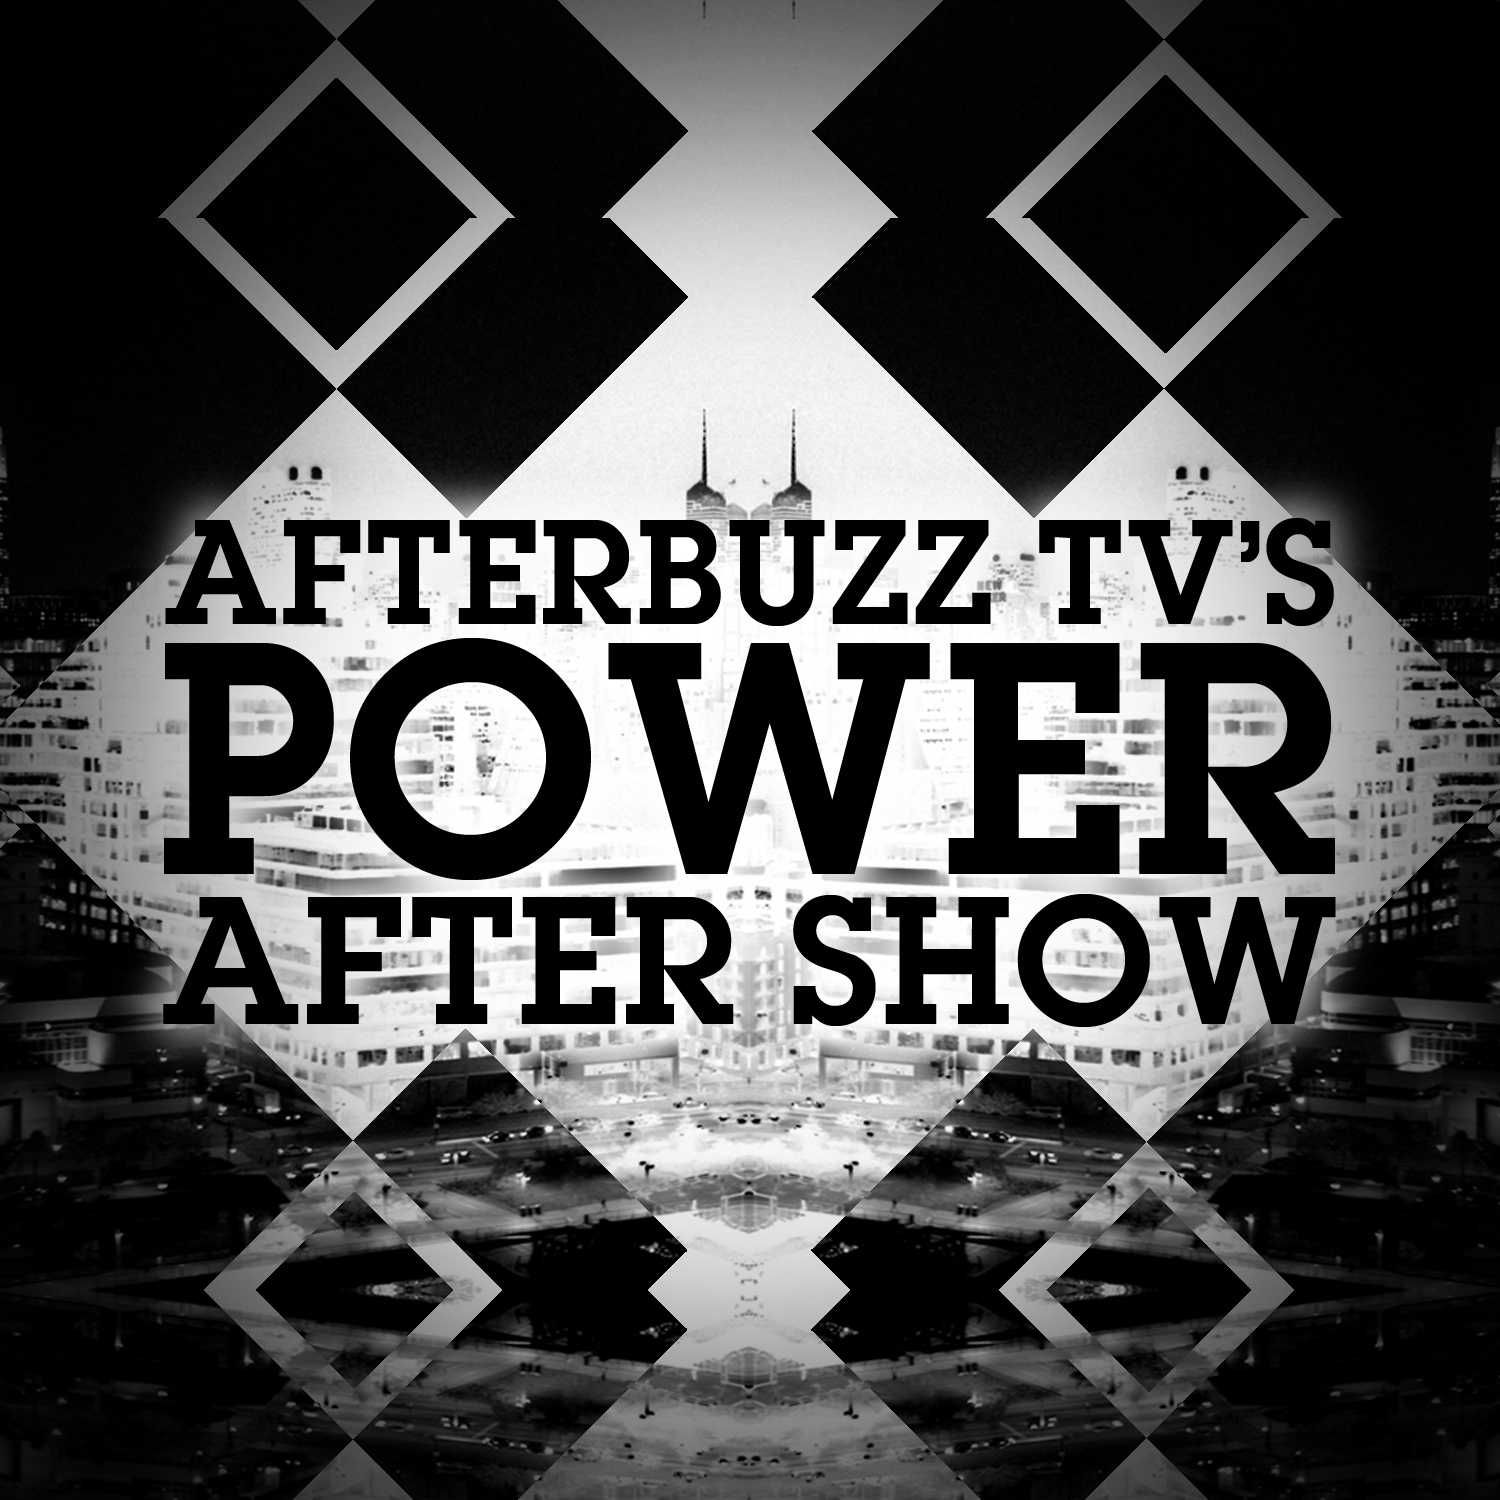 Power After Show